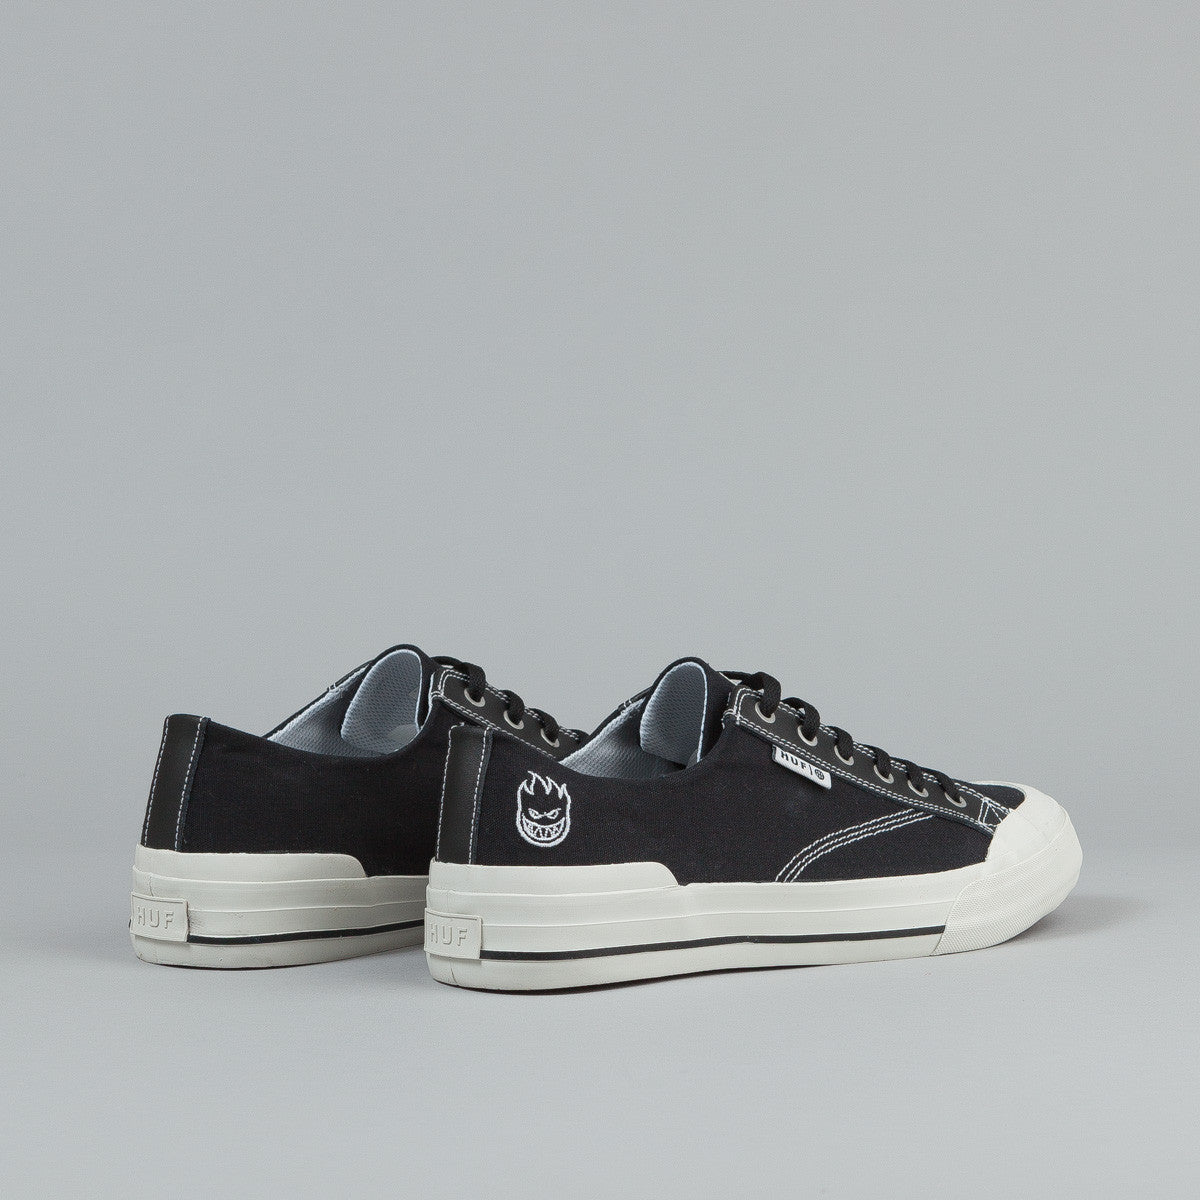 HUF X Spitfire Classic Lo Shoes - Black